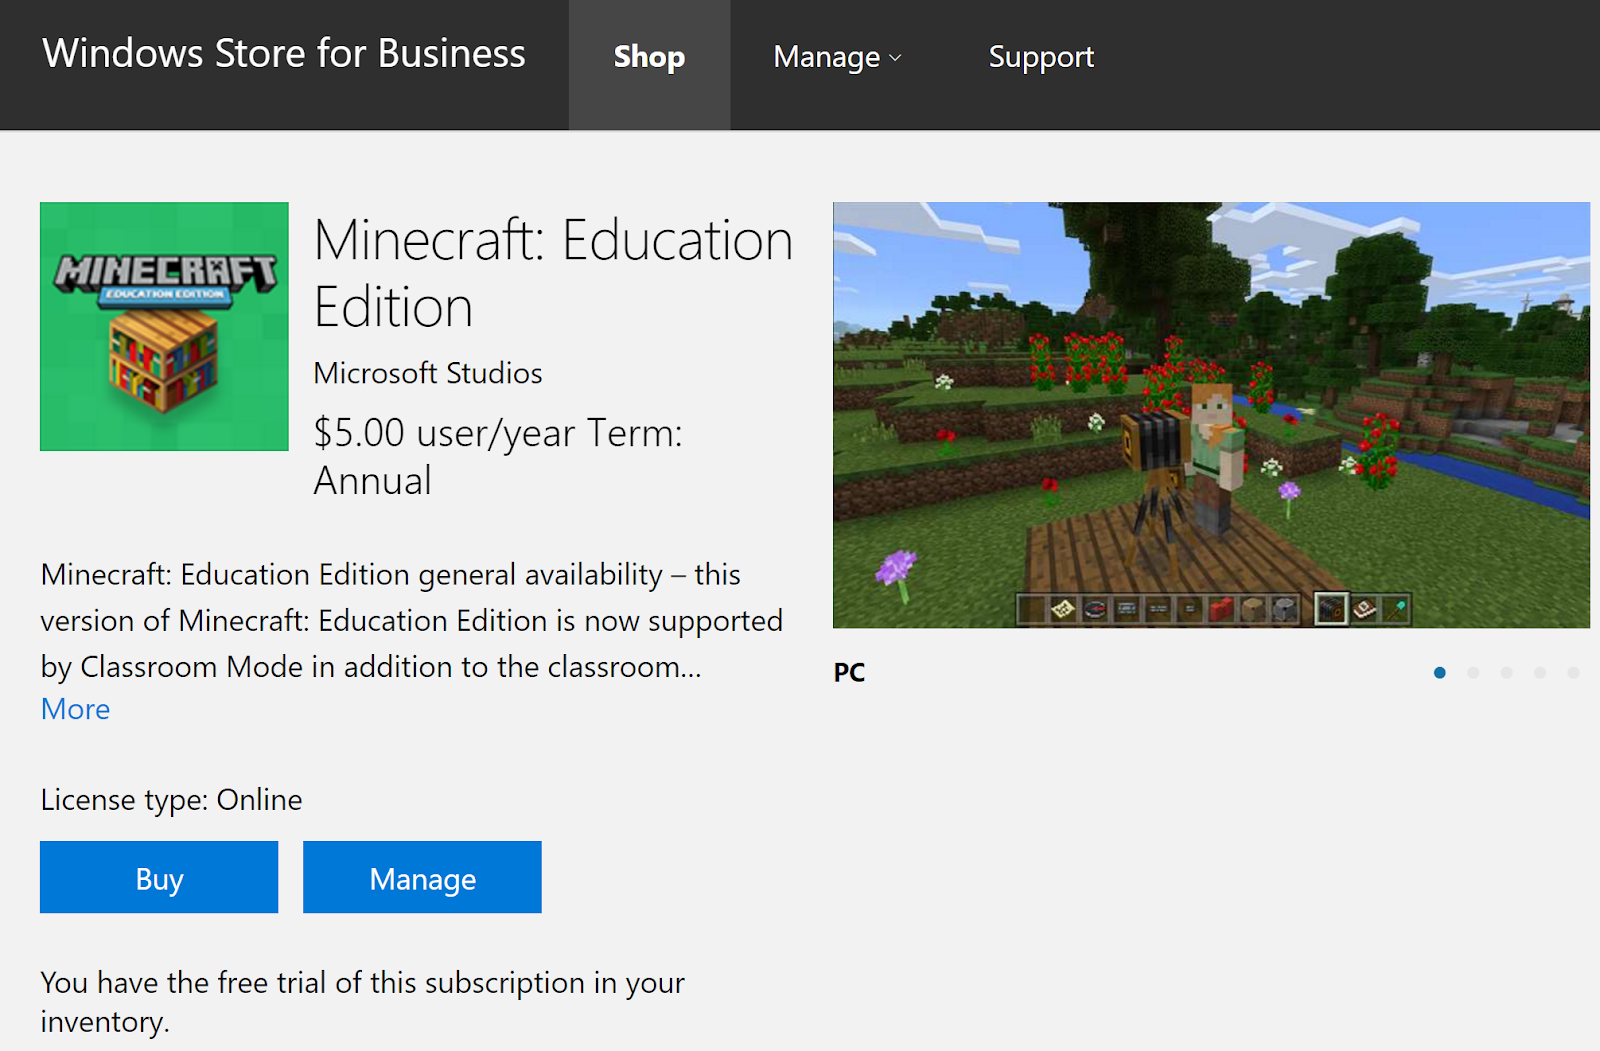 Windows Store for Business  Shop  Manage  Support  Minecraft: Education  MINECRRFX  Edition  Microsoft Studios  $5.00 user/year Term:  Annual  Minecraft: Education Edition general availability — this  version of Minecraft: Education Edition is now supported  by Classroom Mode in addition to the classroom...  PC  More  License type: Online  Buy  Manage  You have the free trial of this subscription in your  inventory.